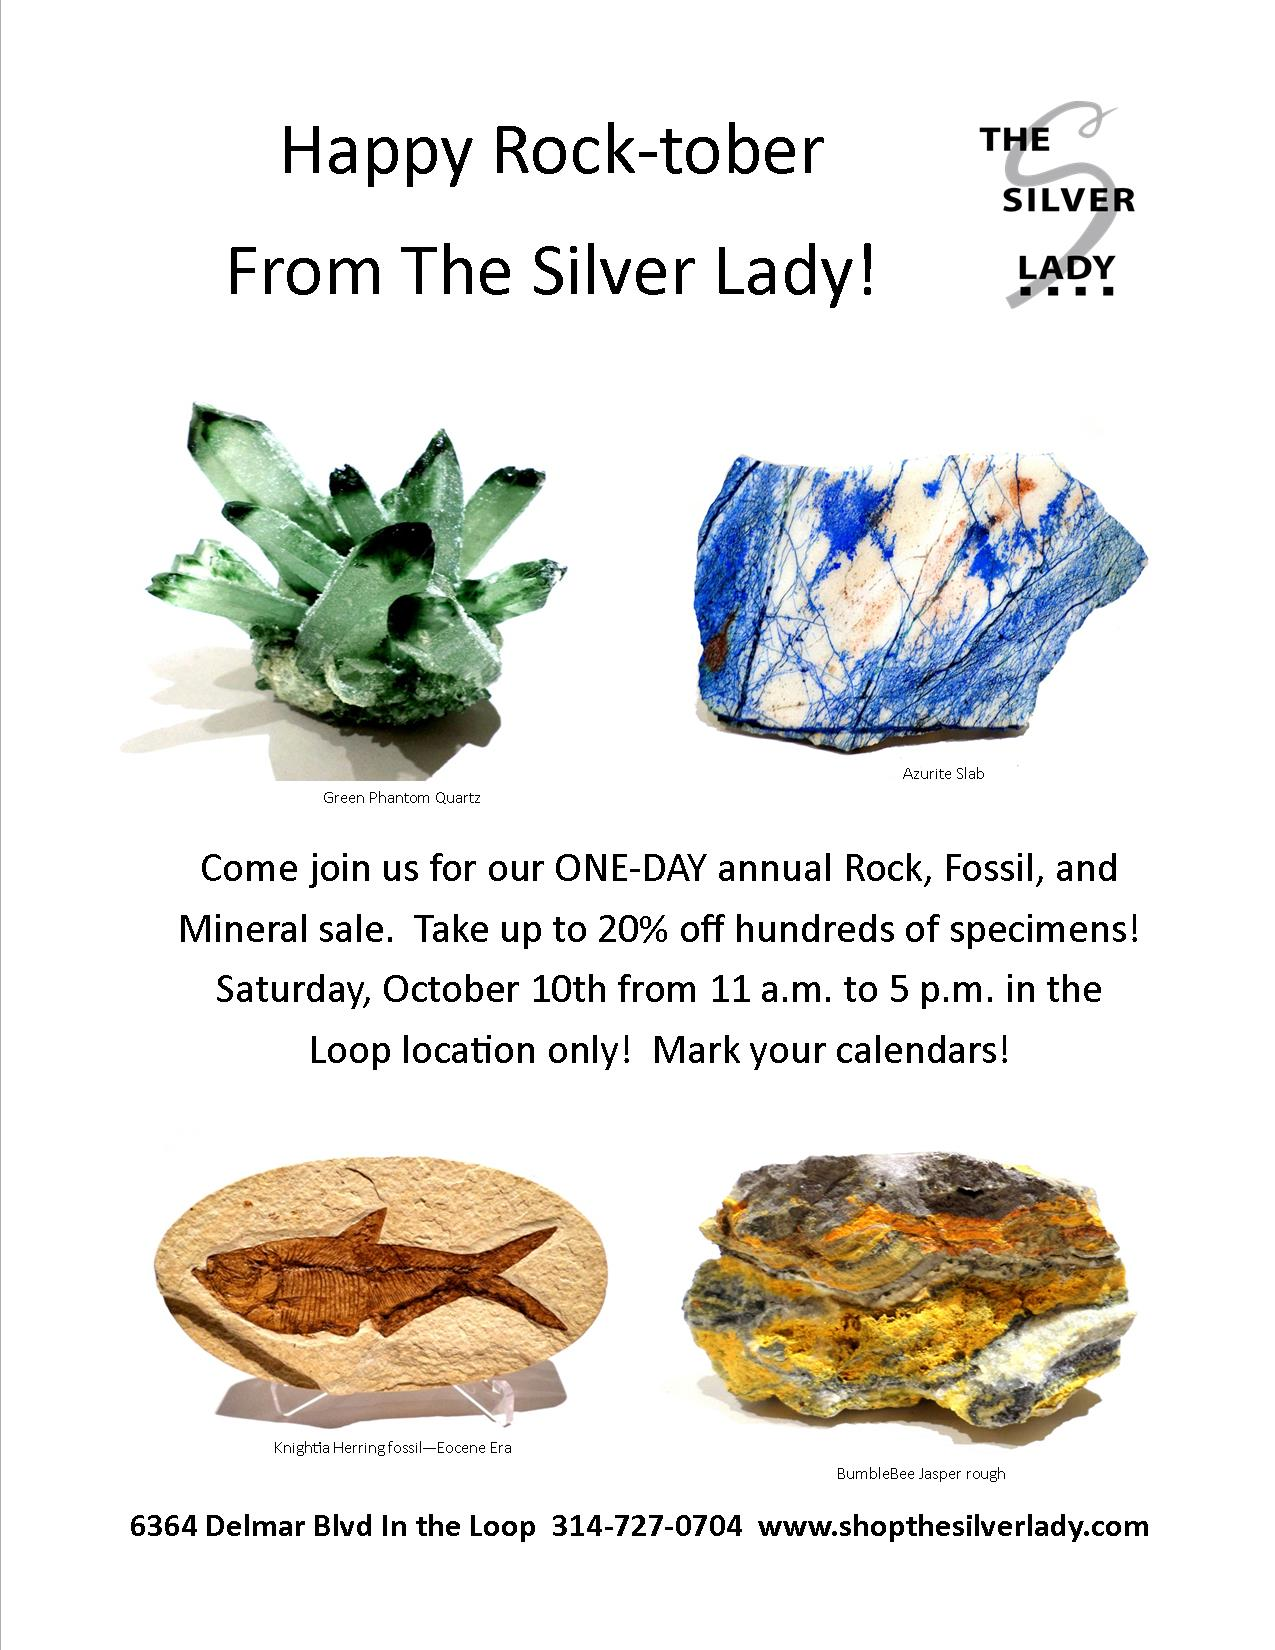 Rock-tober rock sale the Silver Lady